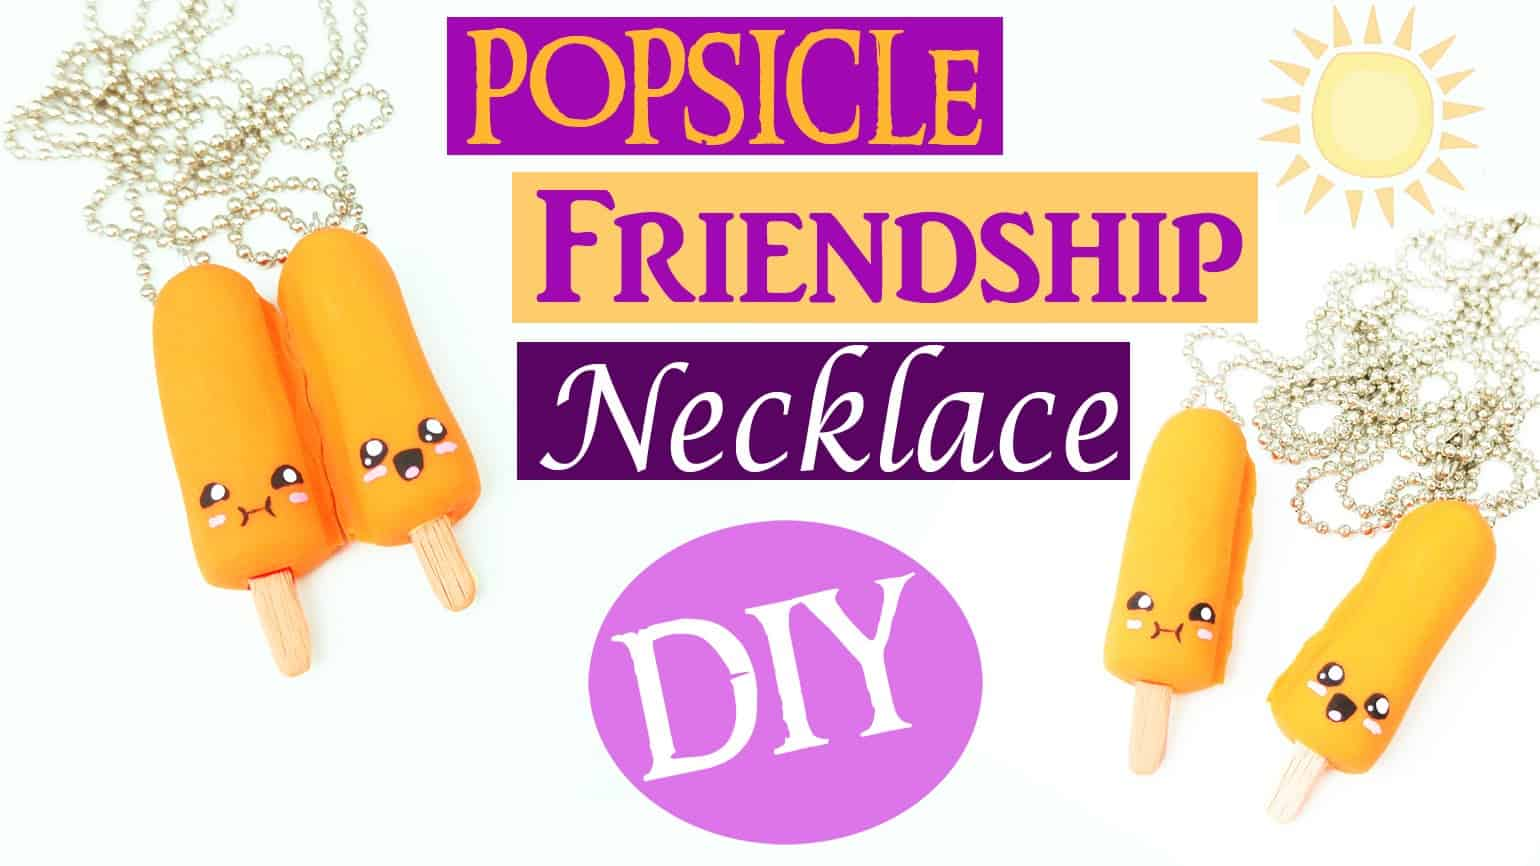 Popsicle friendship necklace